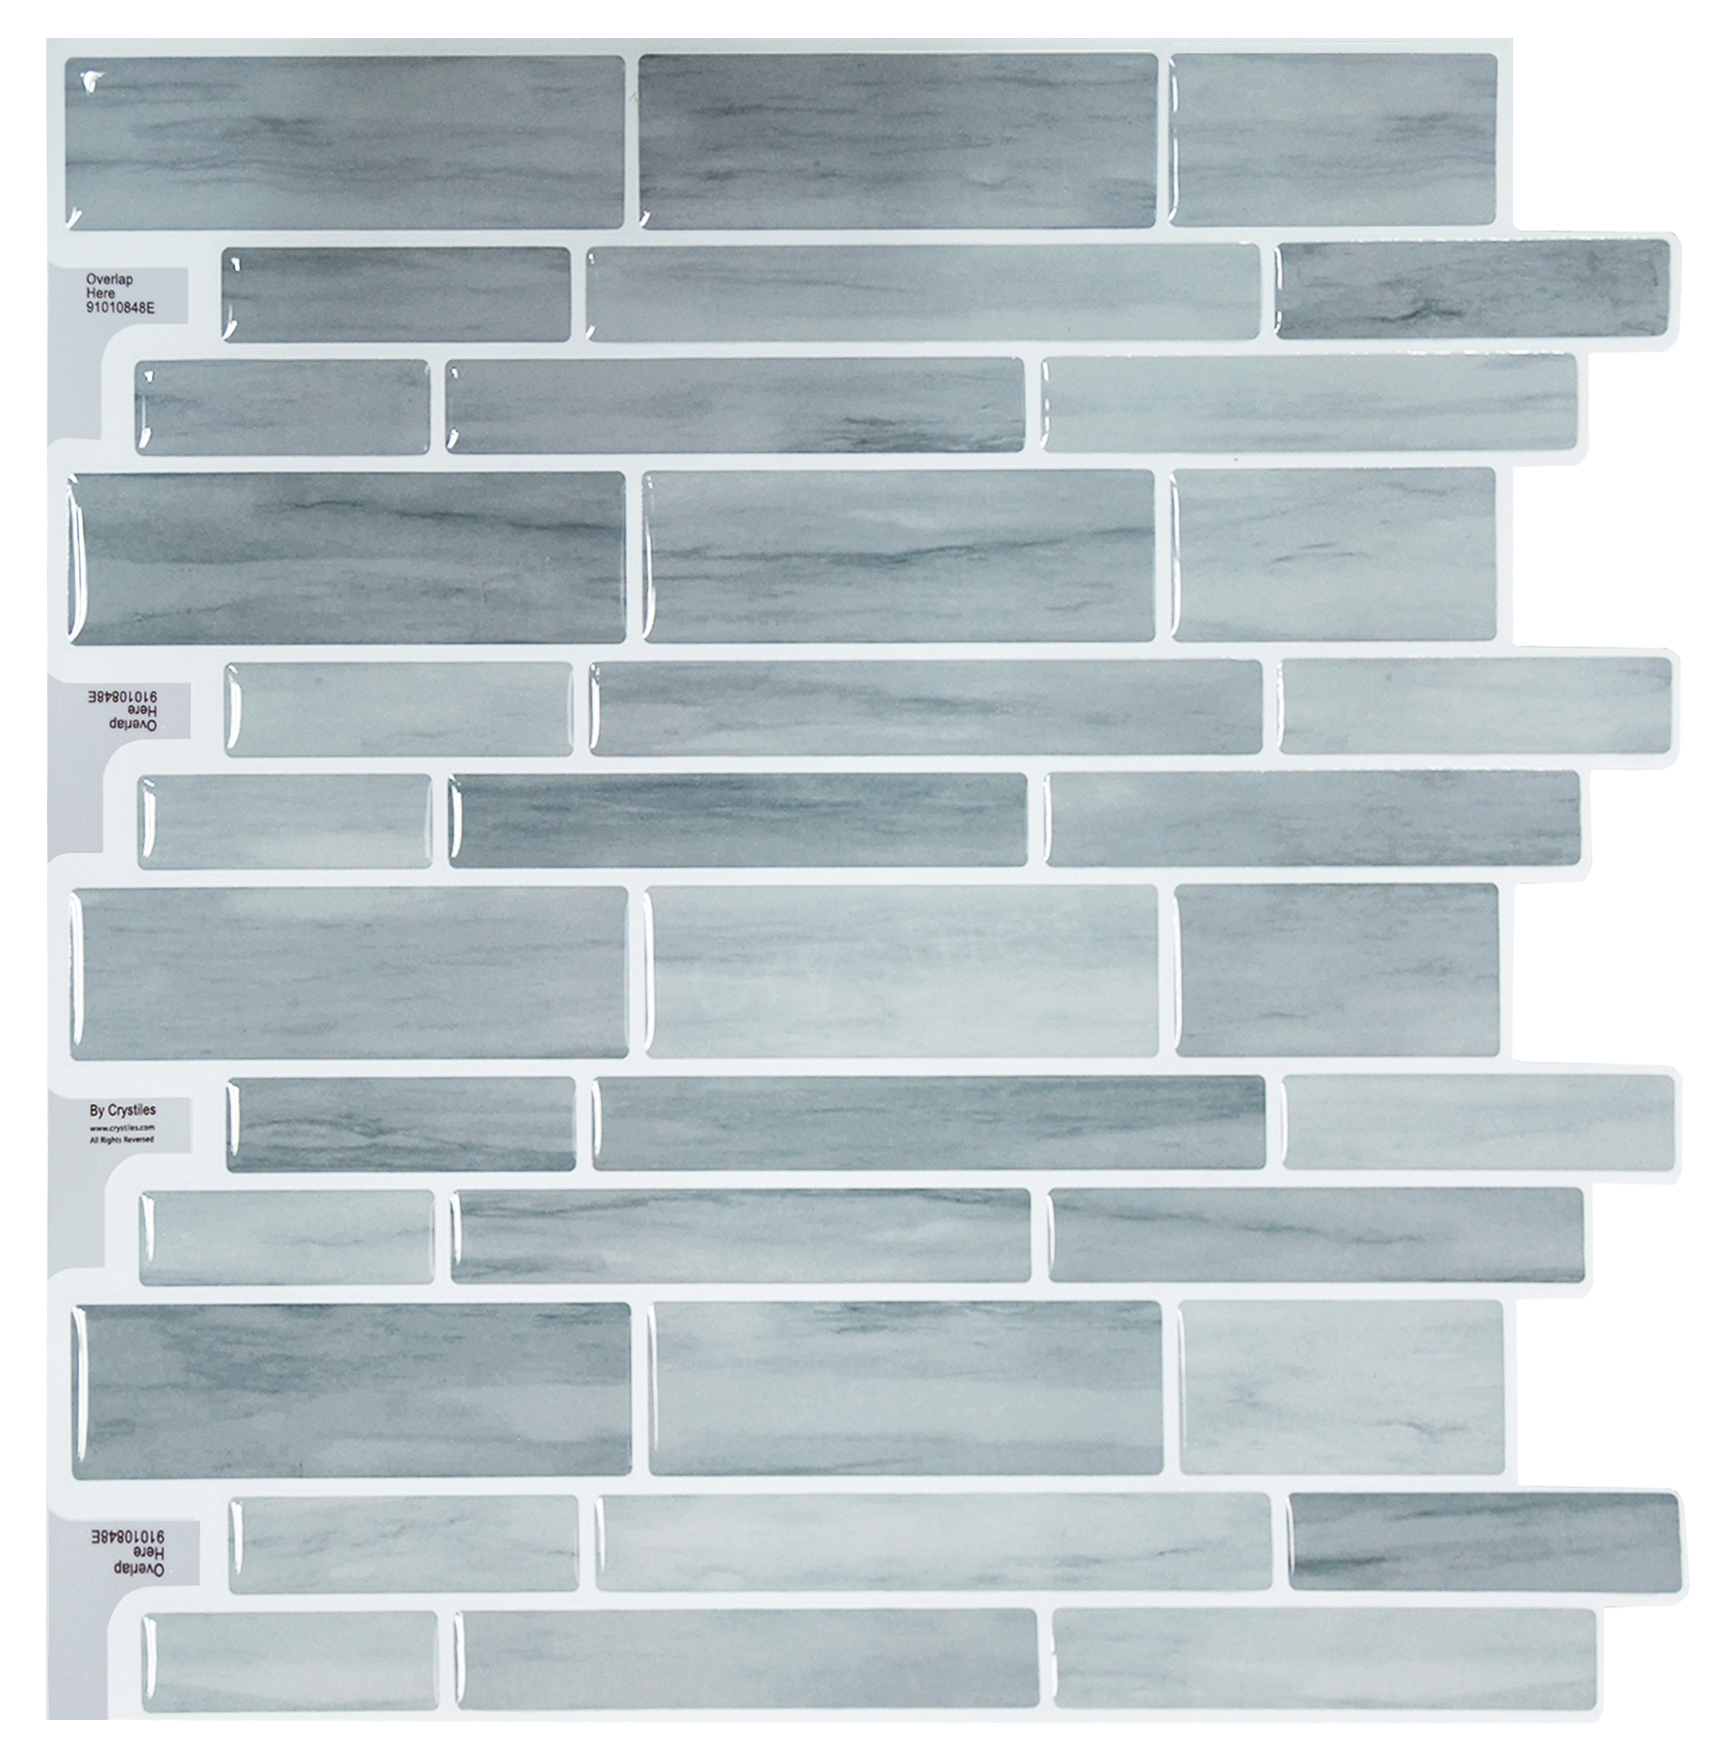 "Crystiles Peel Stick DIY Backsplash Tile Stick-on Vinyl Wall Tile Kitchen Bathroom, Item #91010848, 10"" X 10"", 6 Sheets Pack"